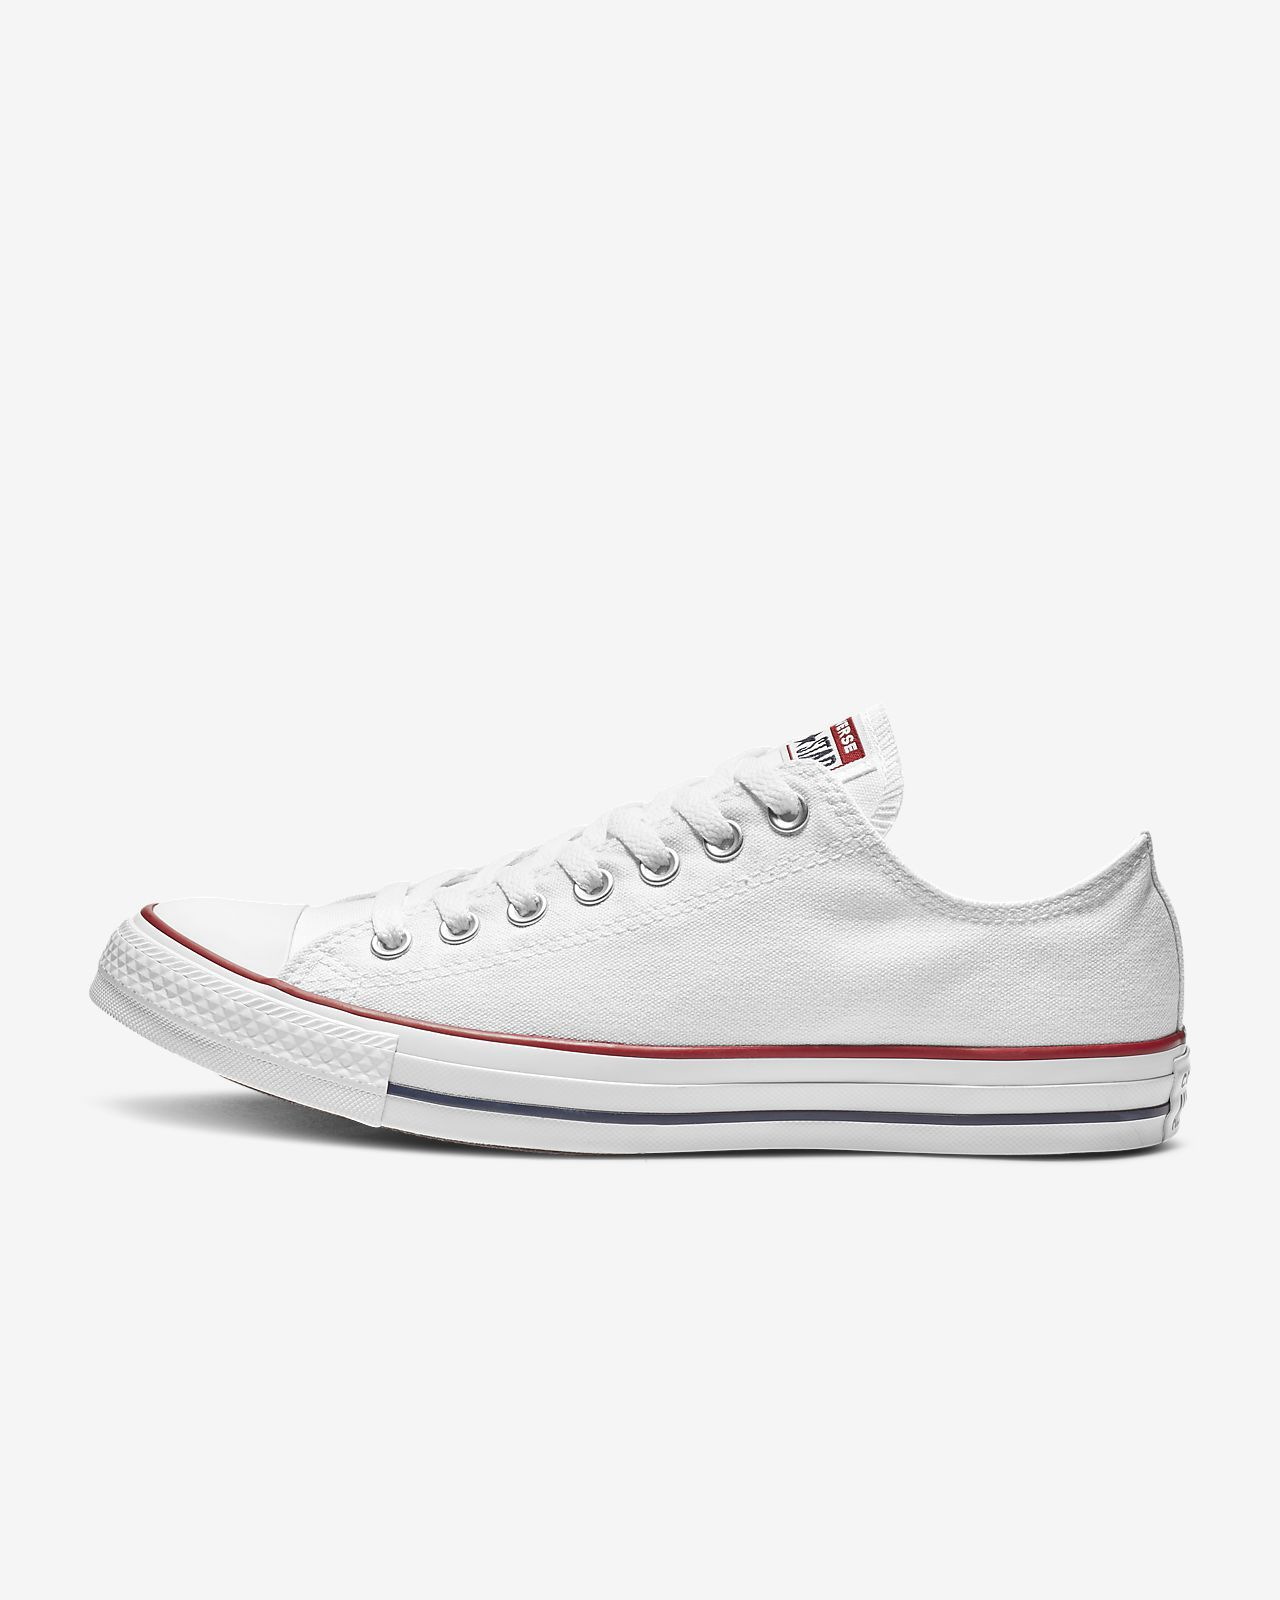 Converse Chuck Taylor All Star Low Top Unisex Shoe Chuck Taylors Converse Chuck Taylor Converse